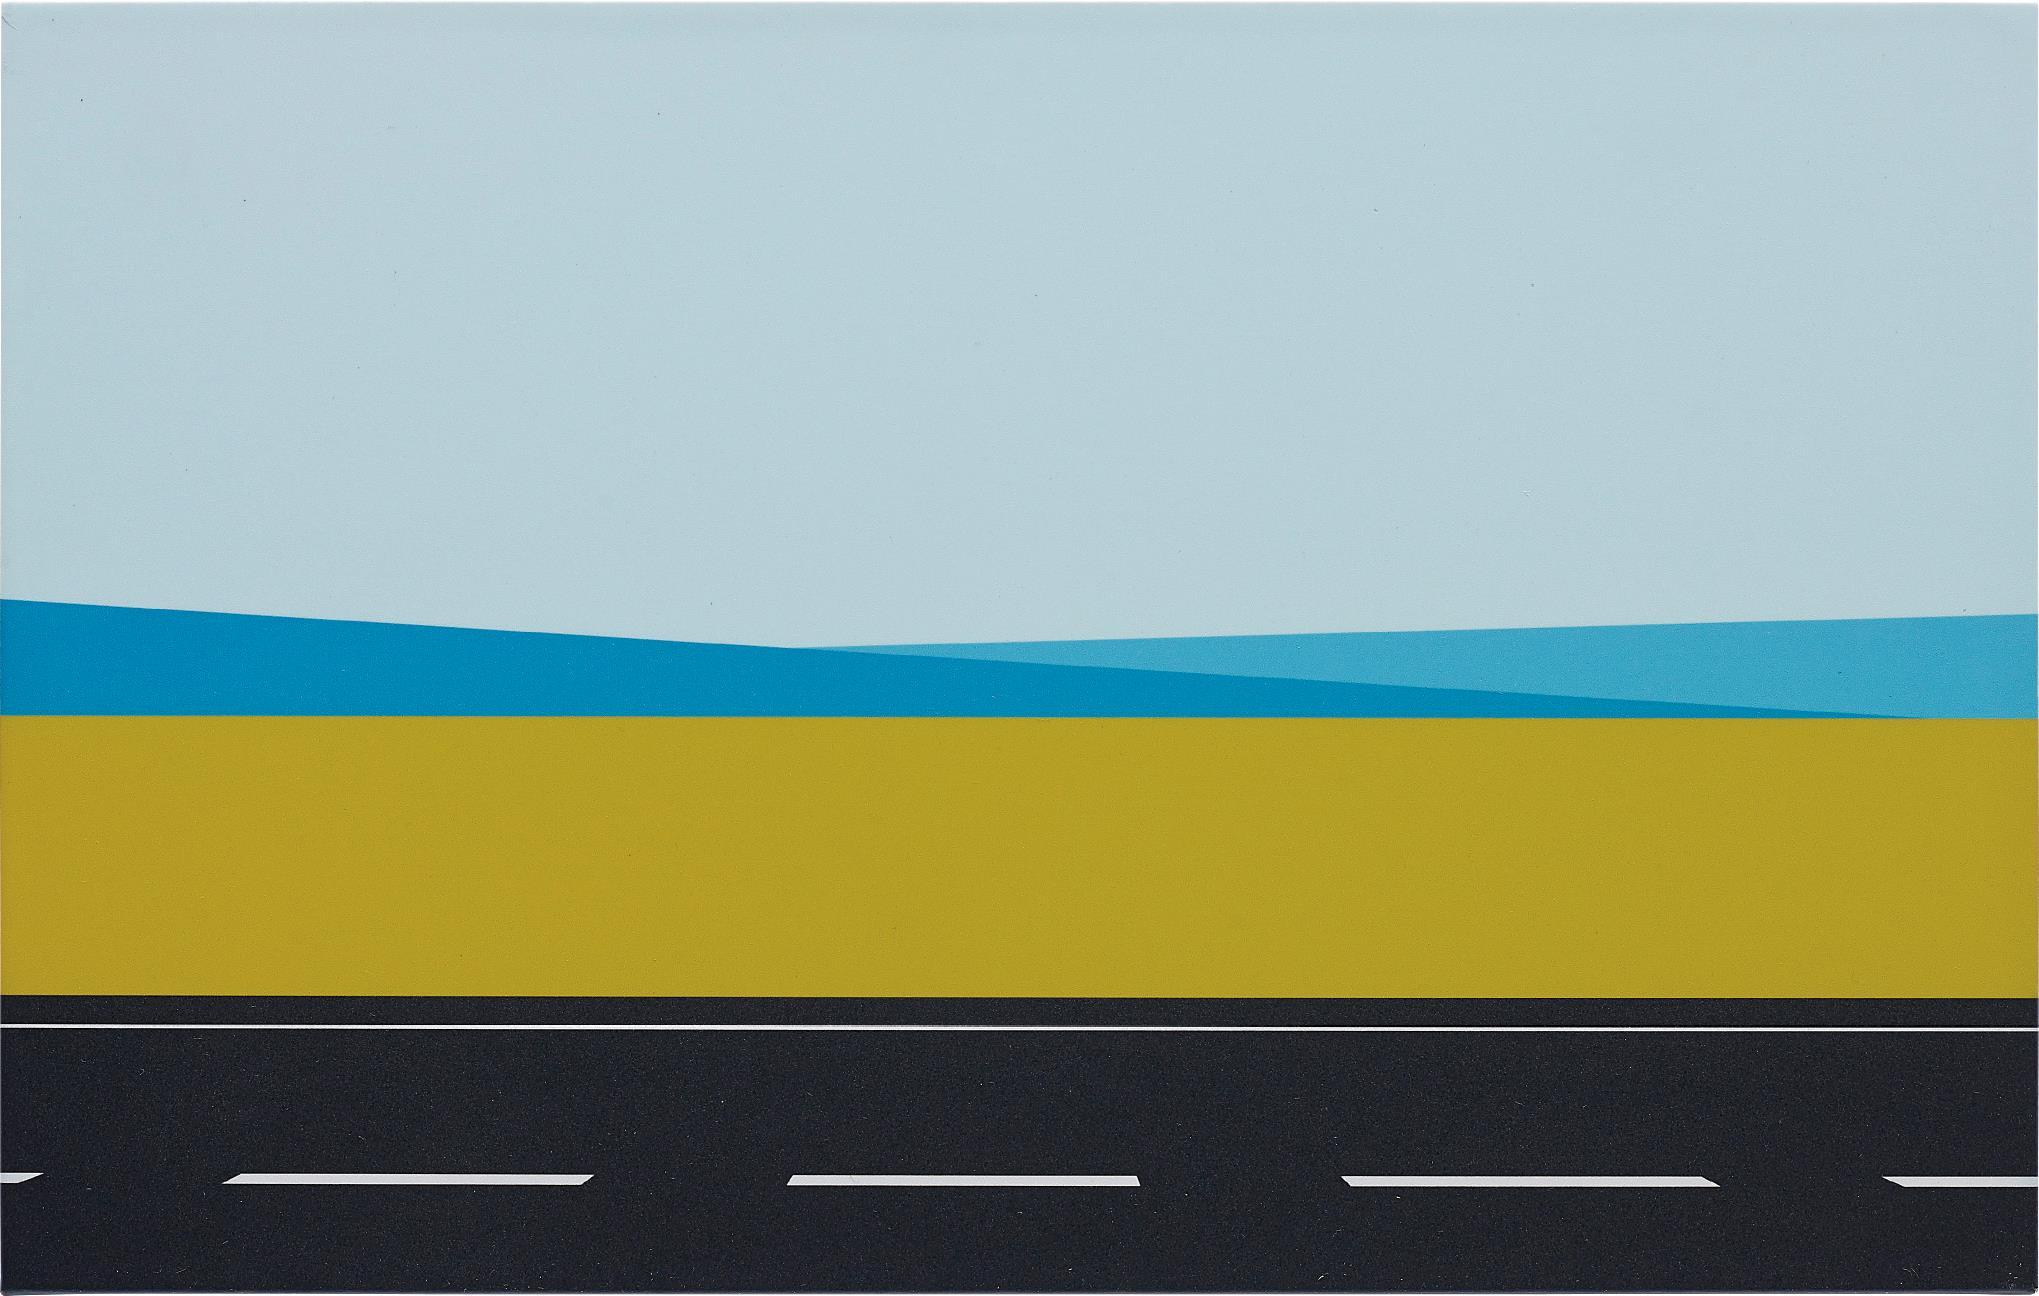 Julian Opie-Roadscape 61-2001